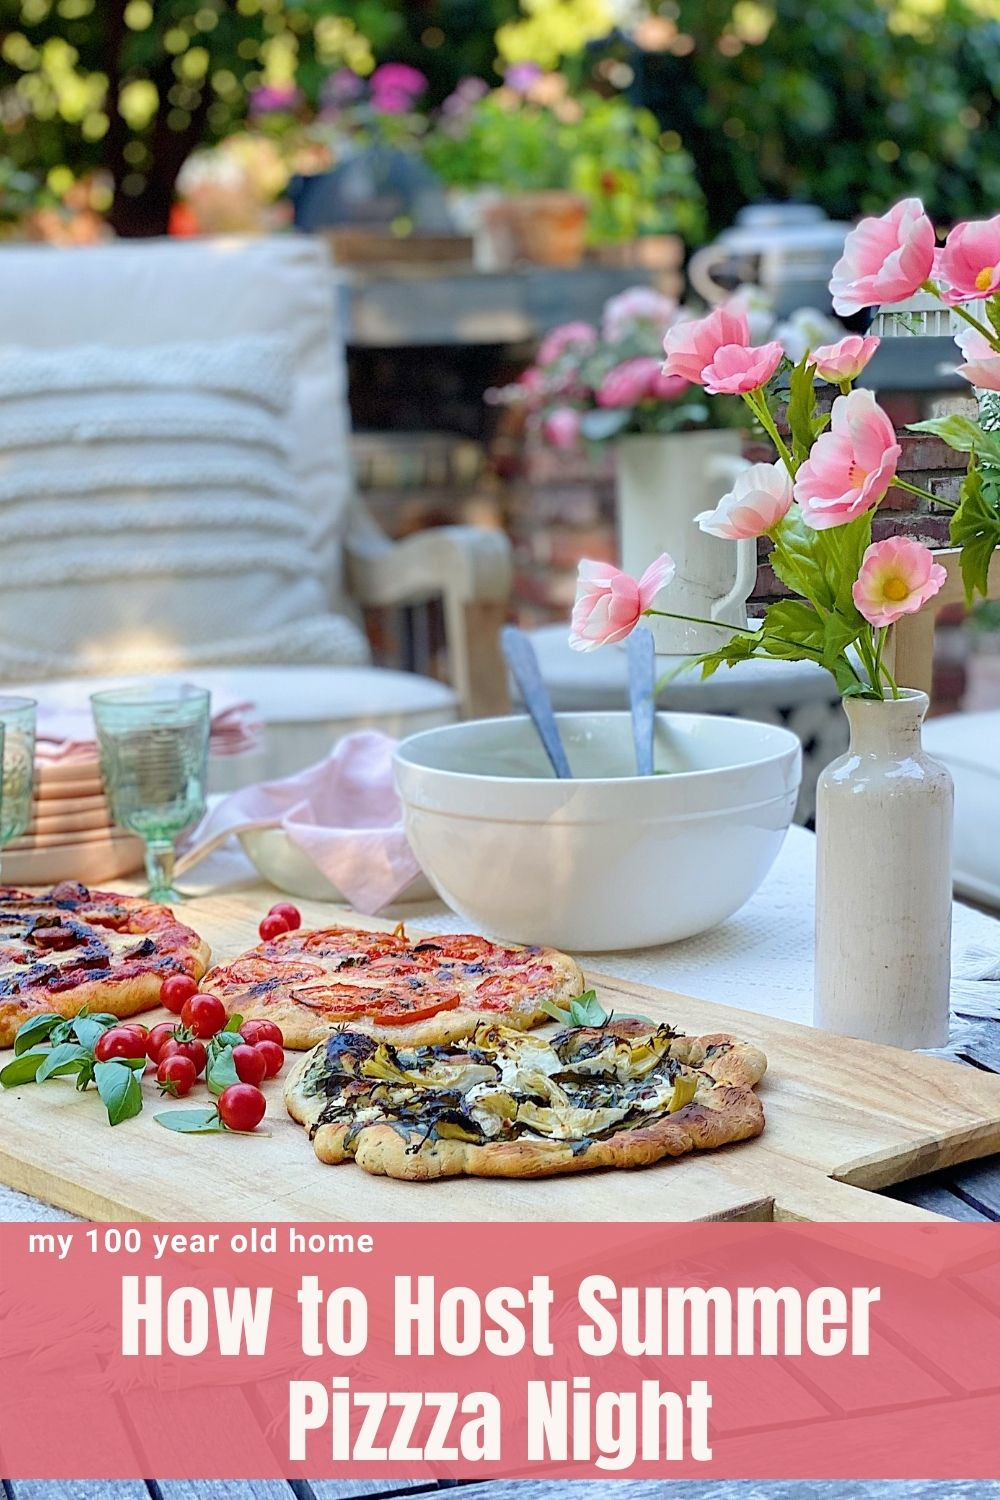 Tonight is the perfect evening for a summer pizza night on the back porch and patio. I found the perfect location for a fun dinner.